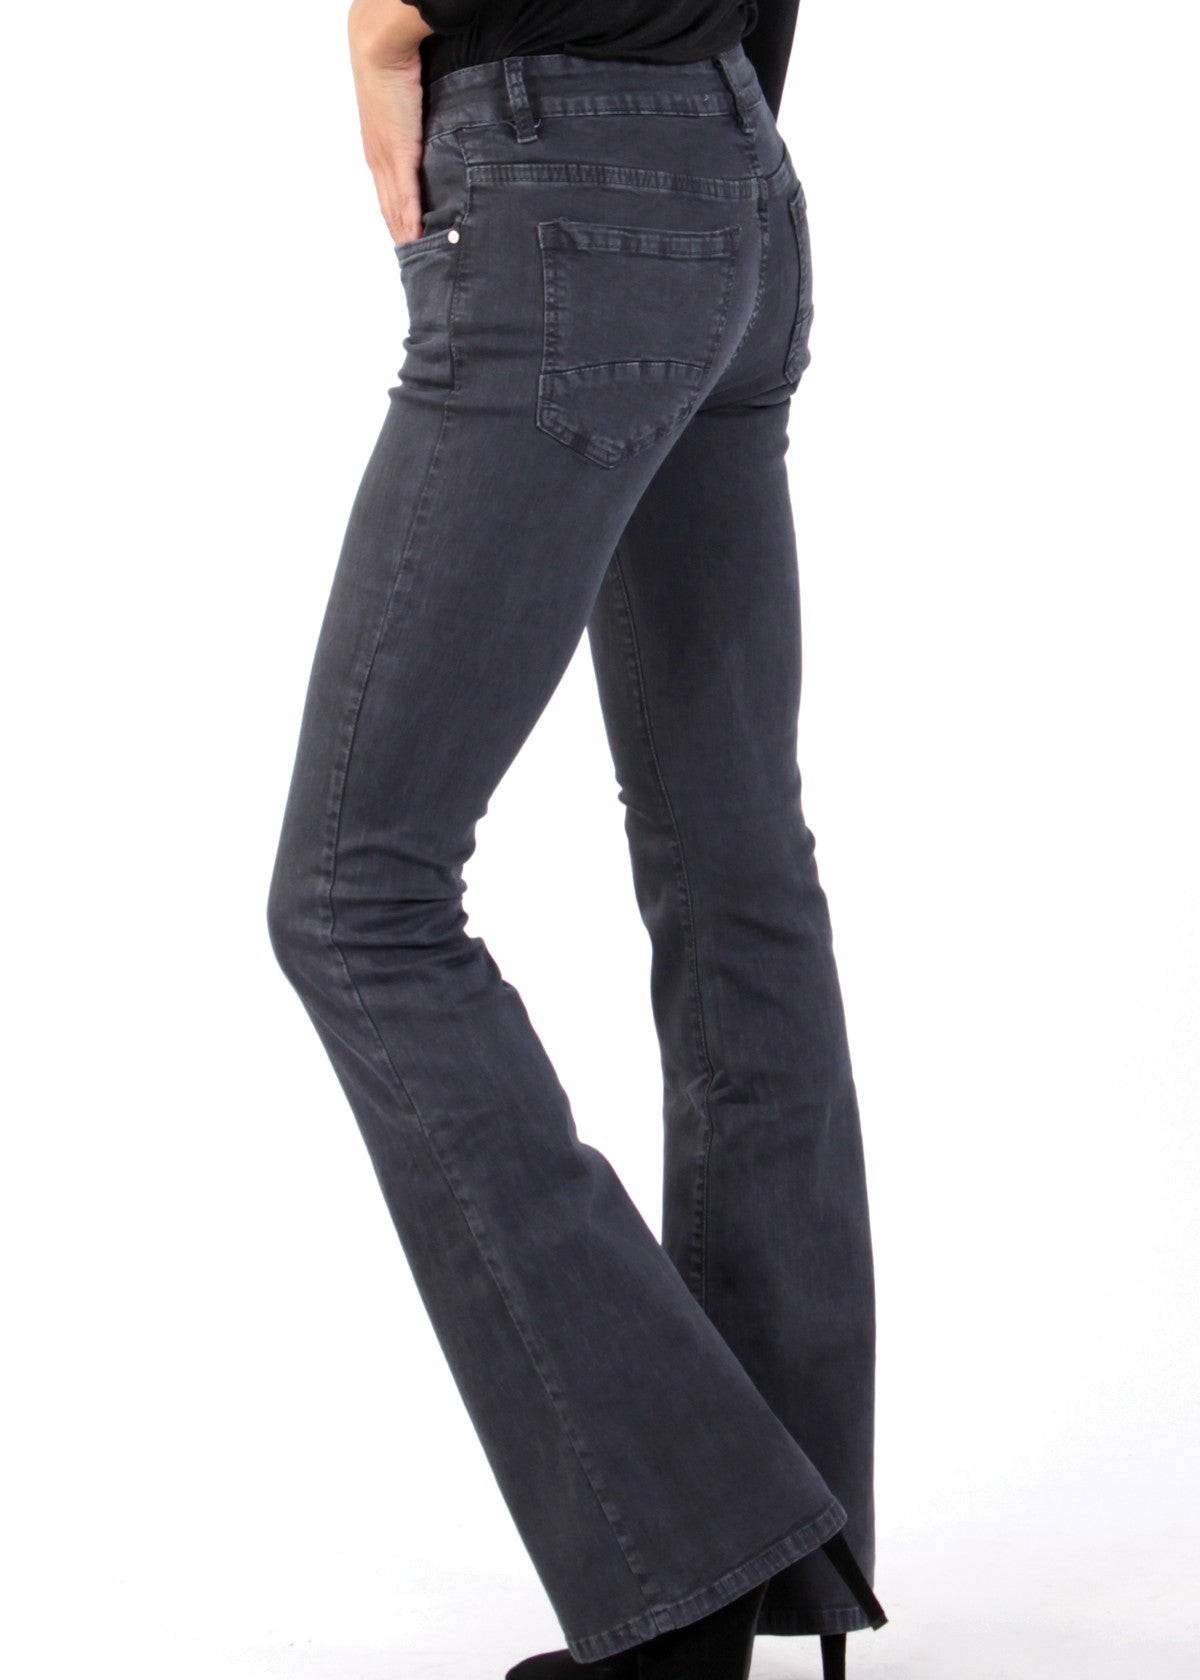 REGINE - Flared Jeans - Grey